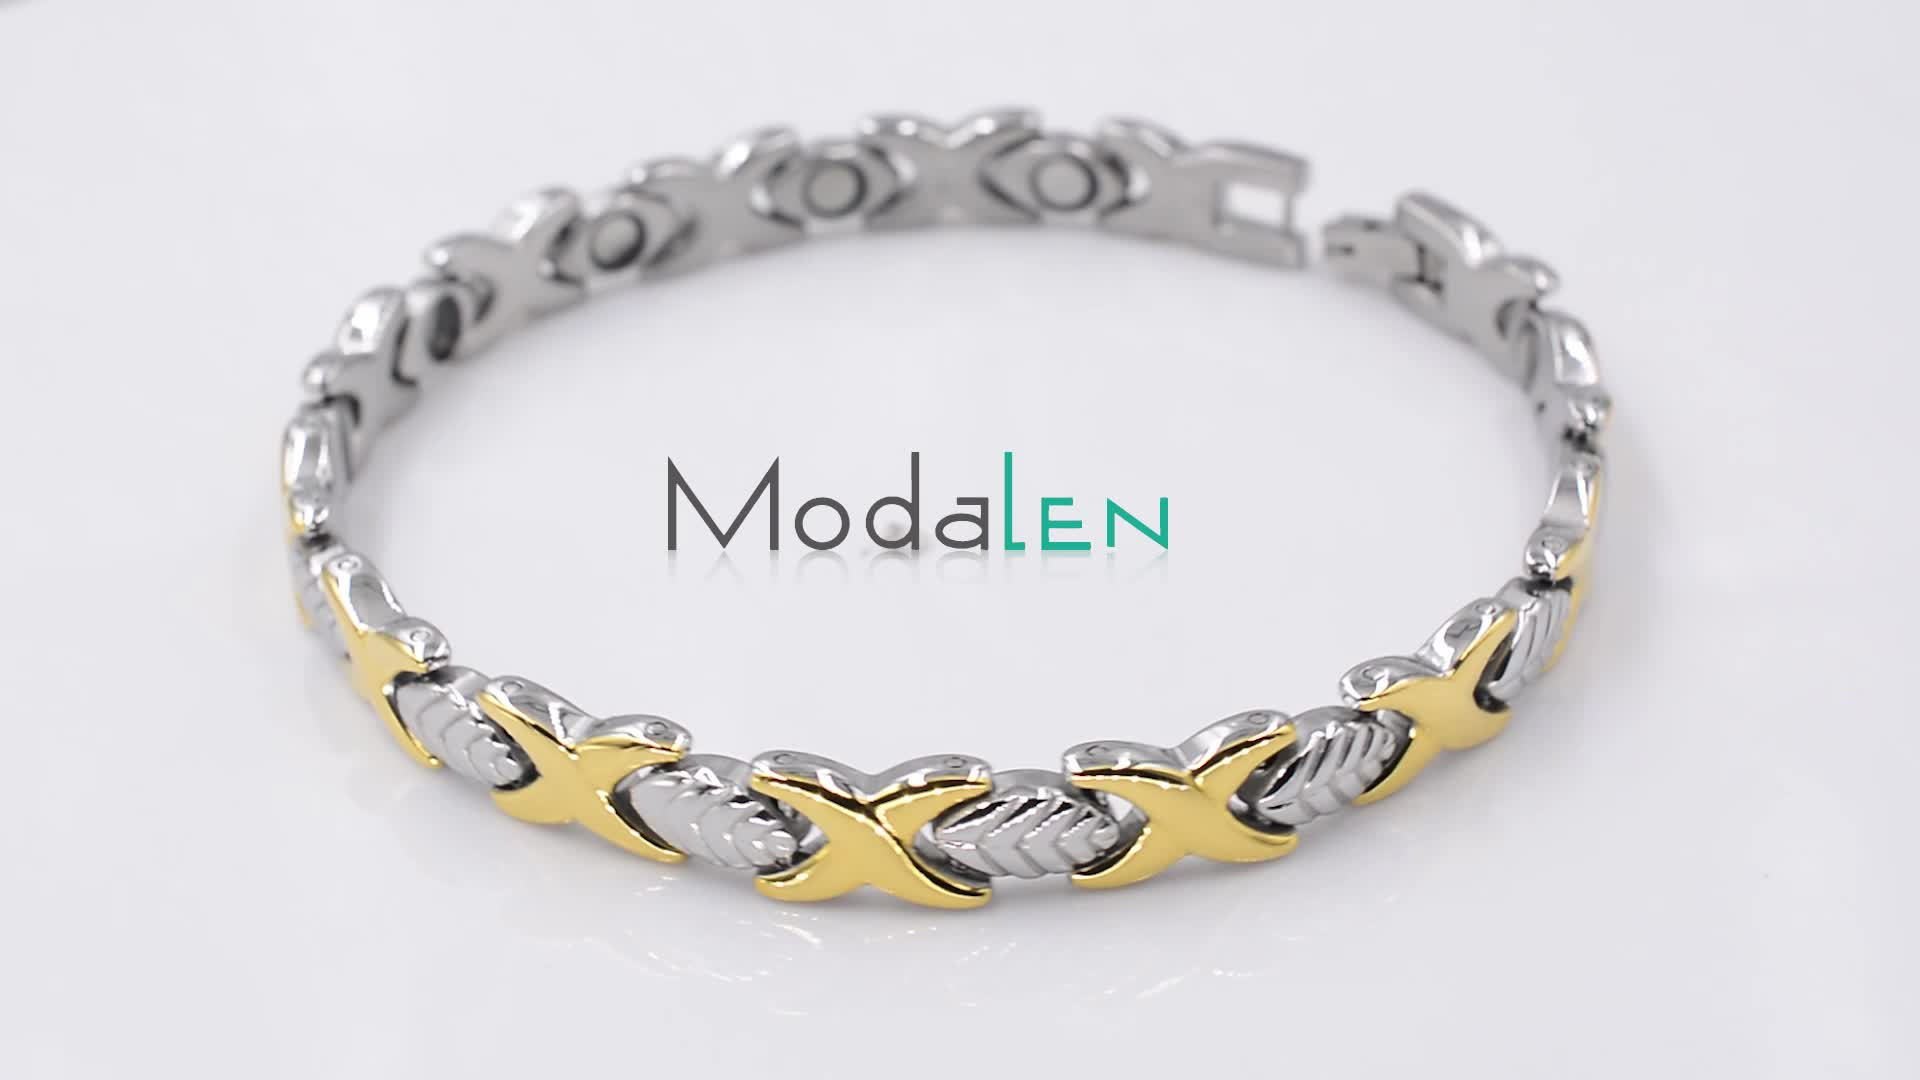 Modalen pure healing neo magnetic bracelet for pain